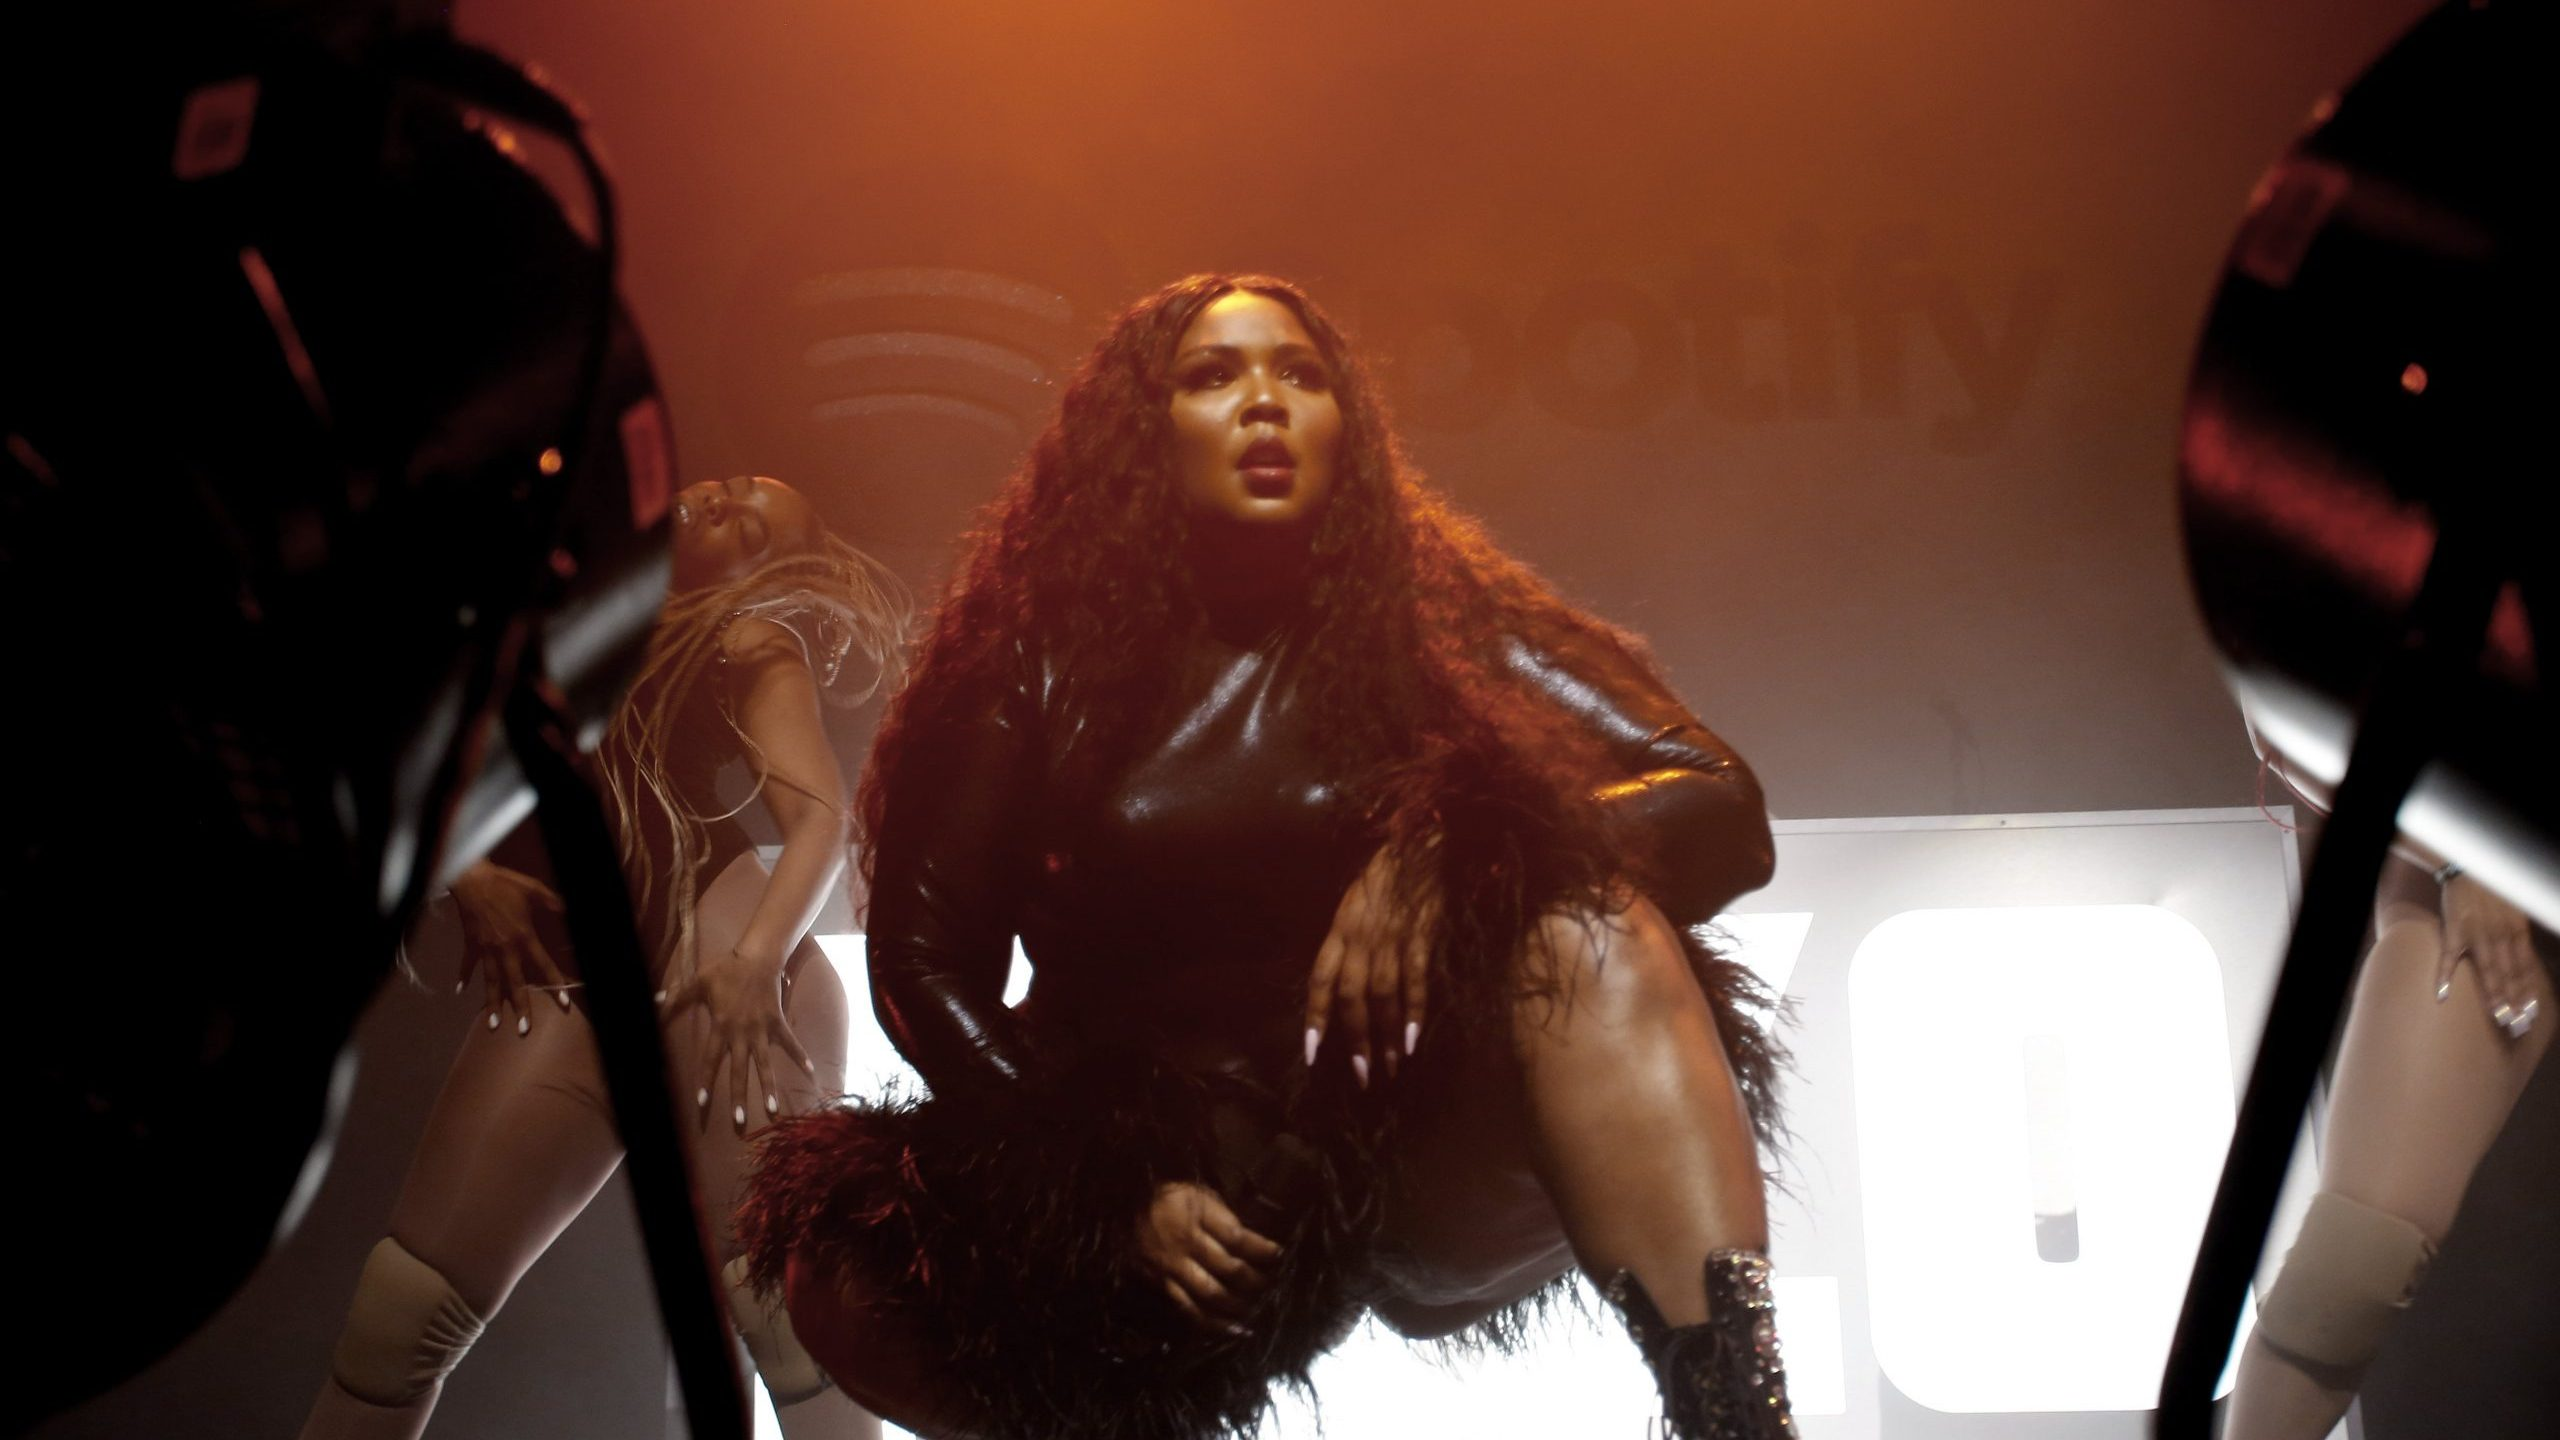 Lizzo performs onstage at a Spotify party for the Grammy Awards' best new artist nominees at The Lot Studios in Los Angeles on Jan. 23, 2020. (Credit: Rachel Murray / Getty Images)